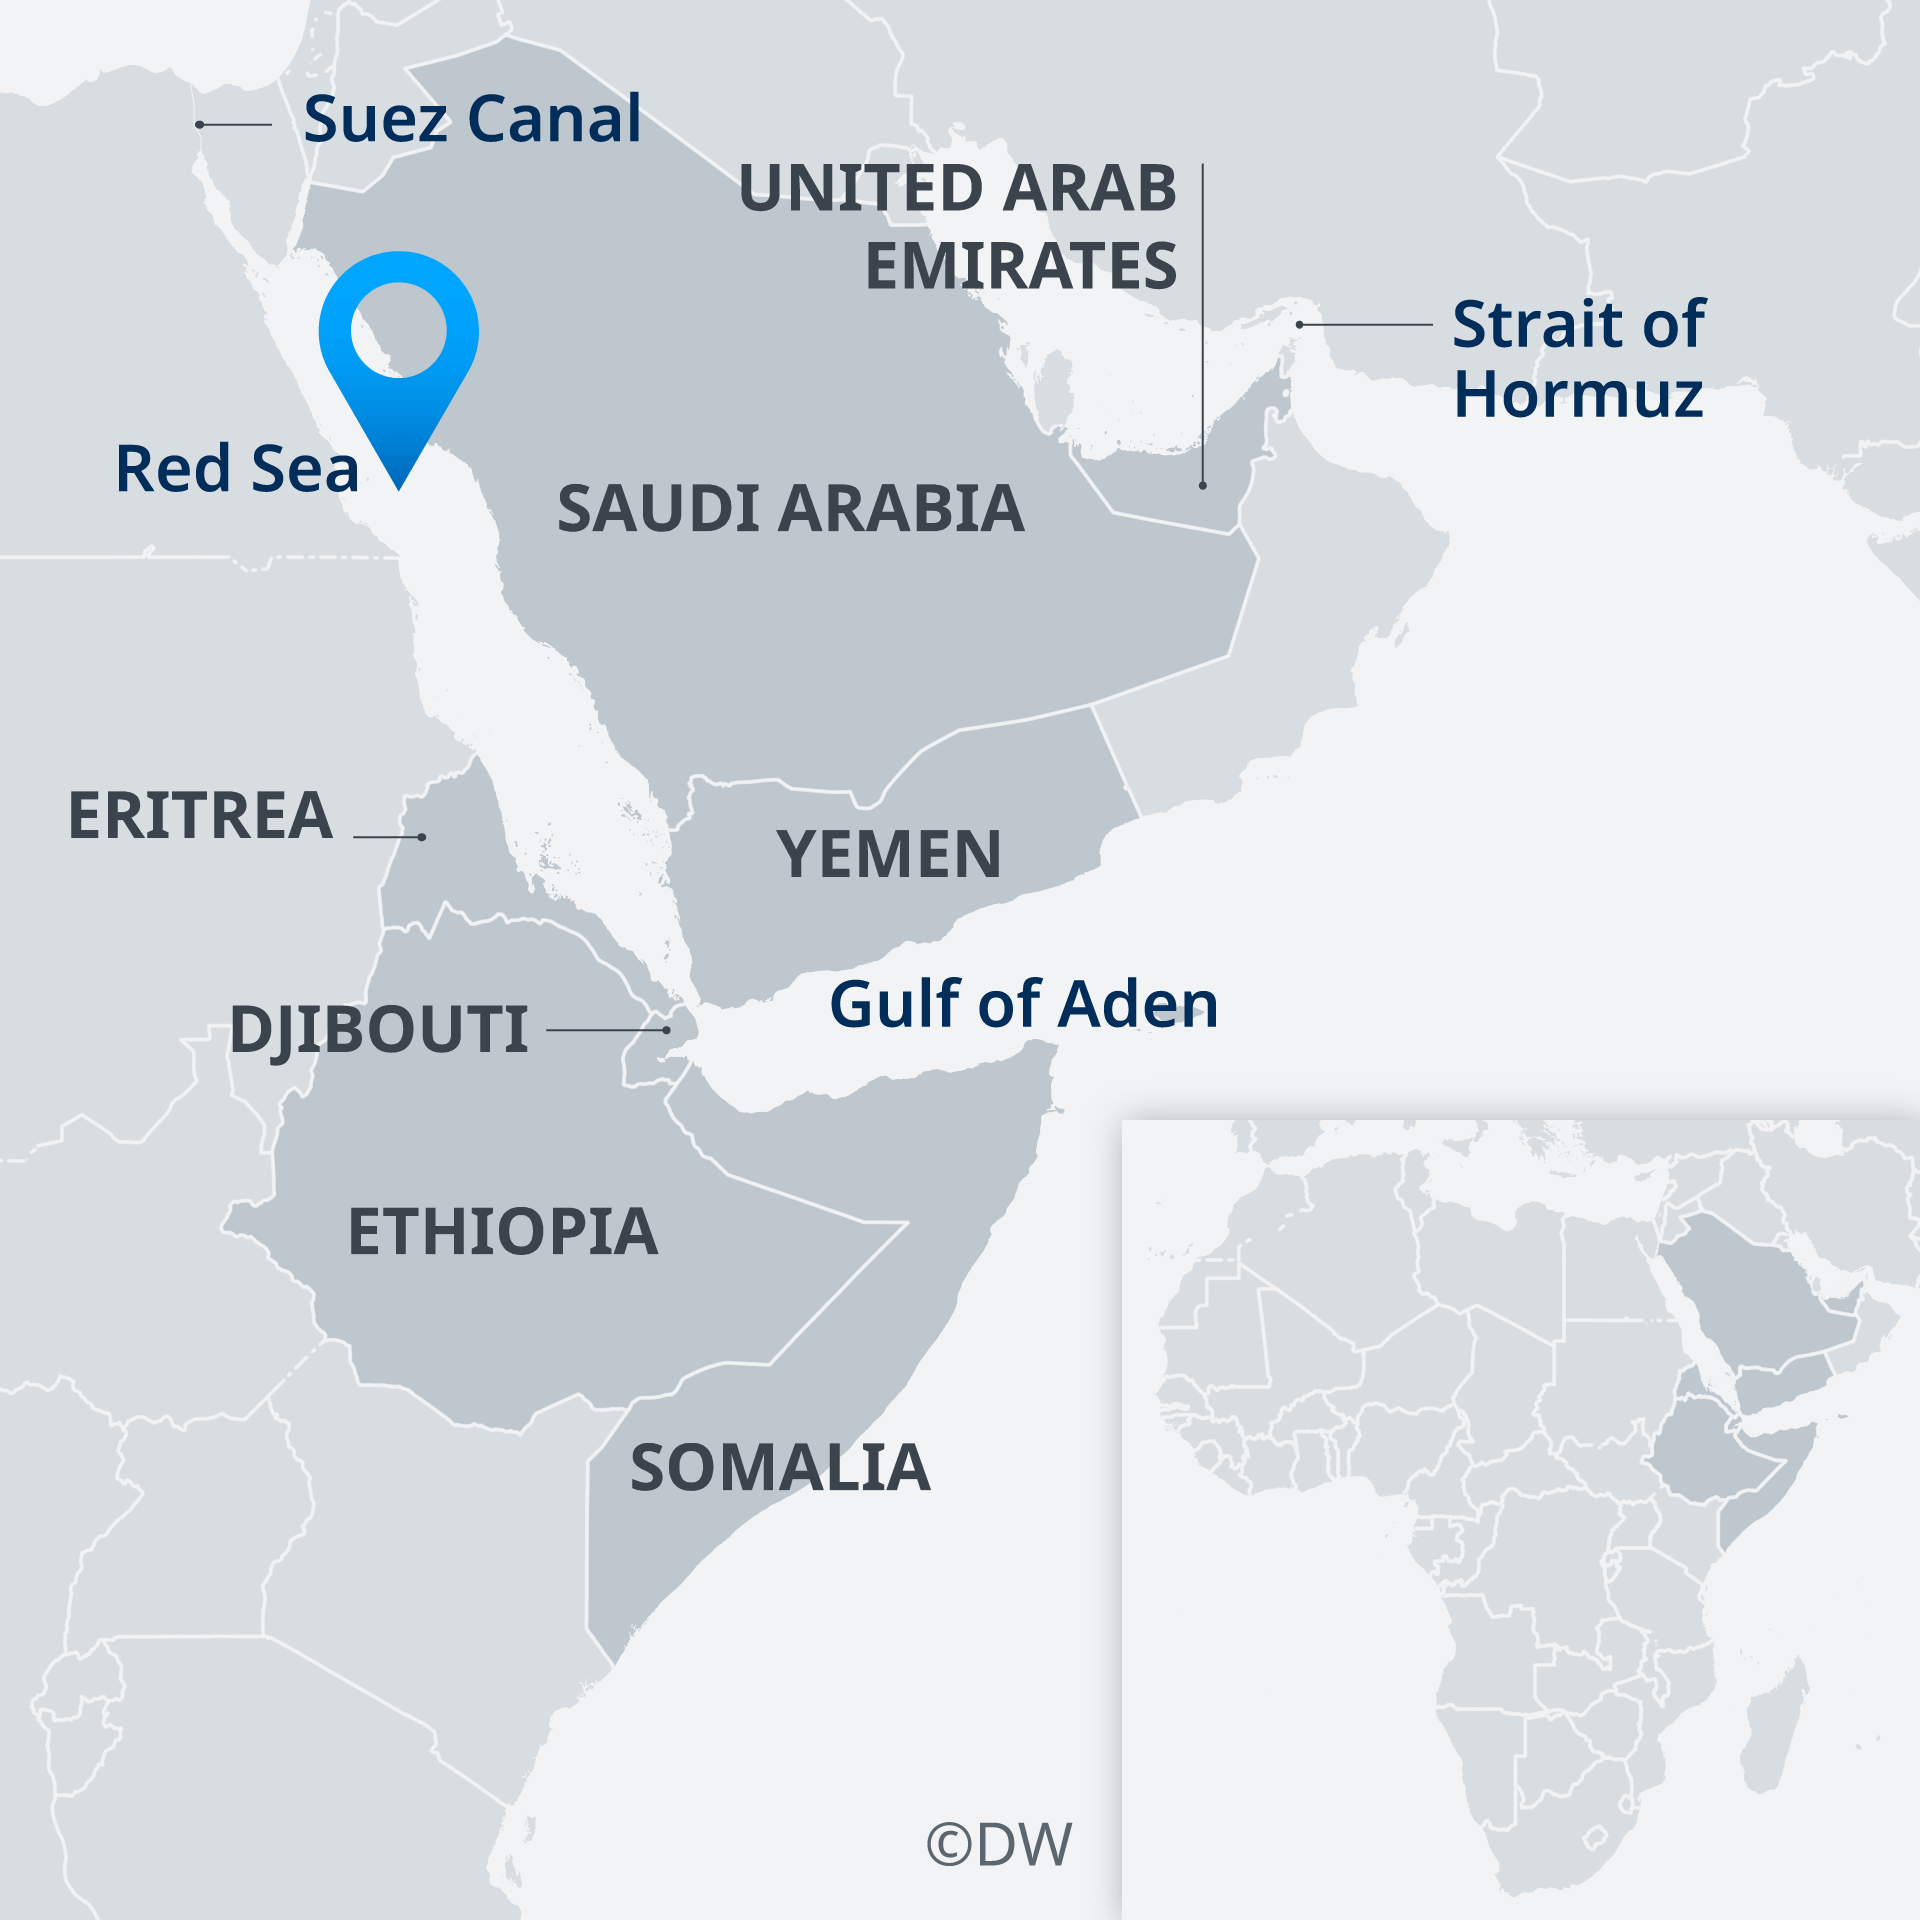 Arab Gulf states in the Horn of Africa: What role do they ...